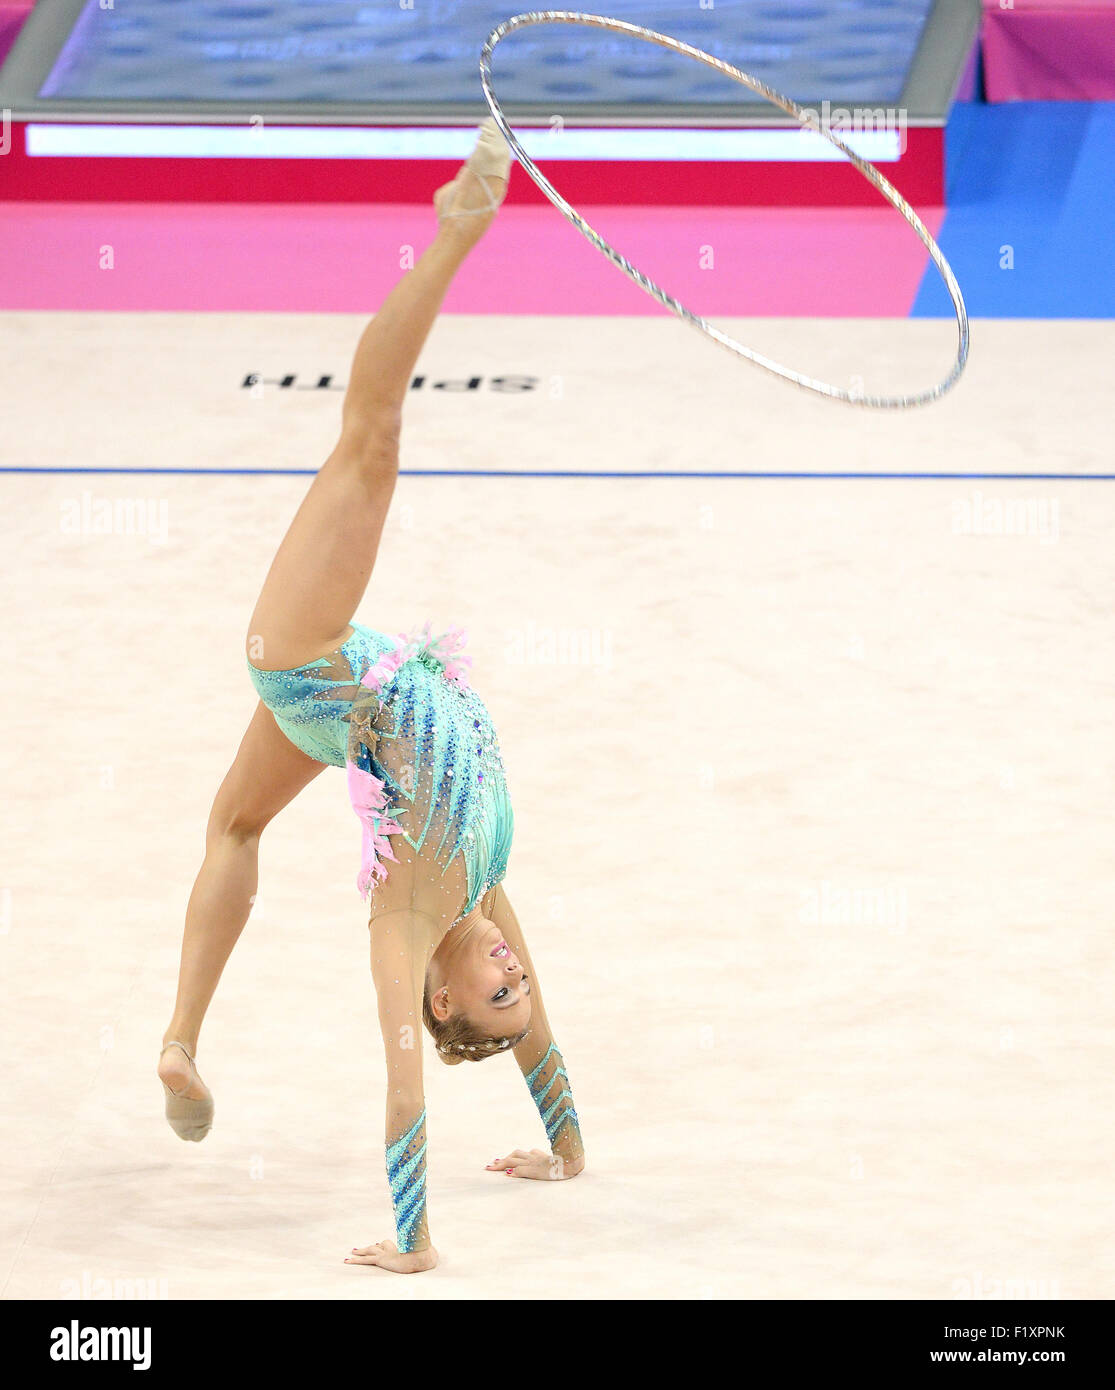 Stuttgart, Germany. 8th Sep, 2015. Nicol Ruprecht of Austria in action during the Gymnastics World Championships - Stock Image